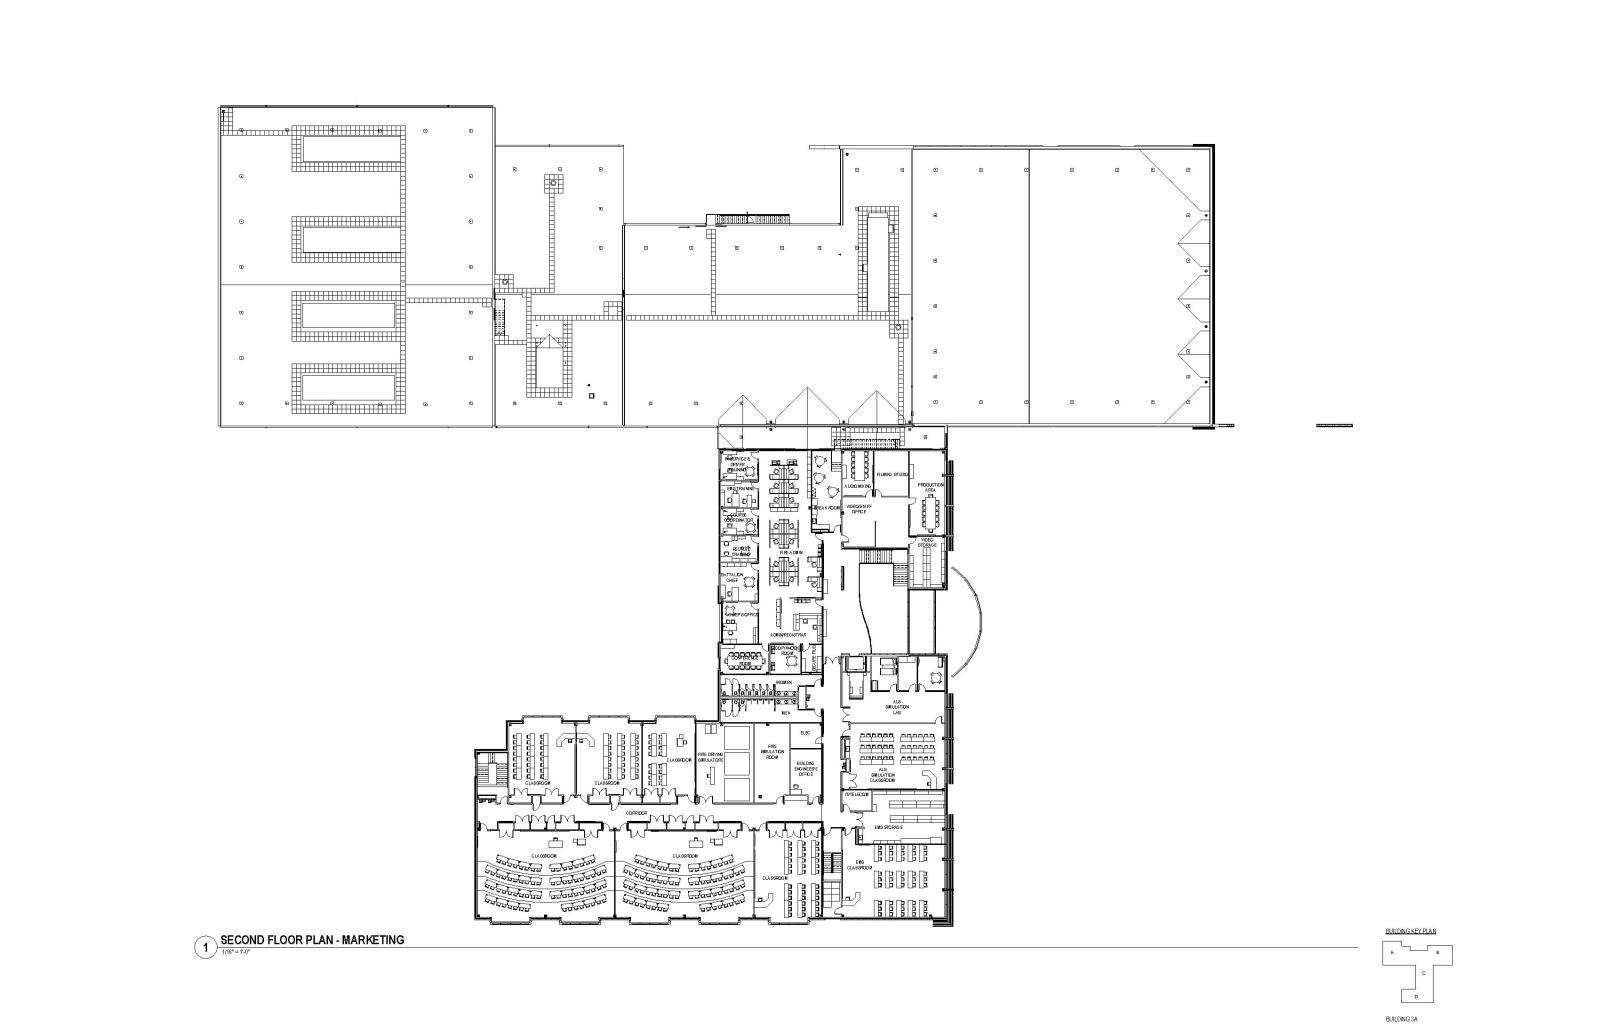 MASP & PSTA Project 3: Public Safety Training Academy - PSTA Second Floor Plan